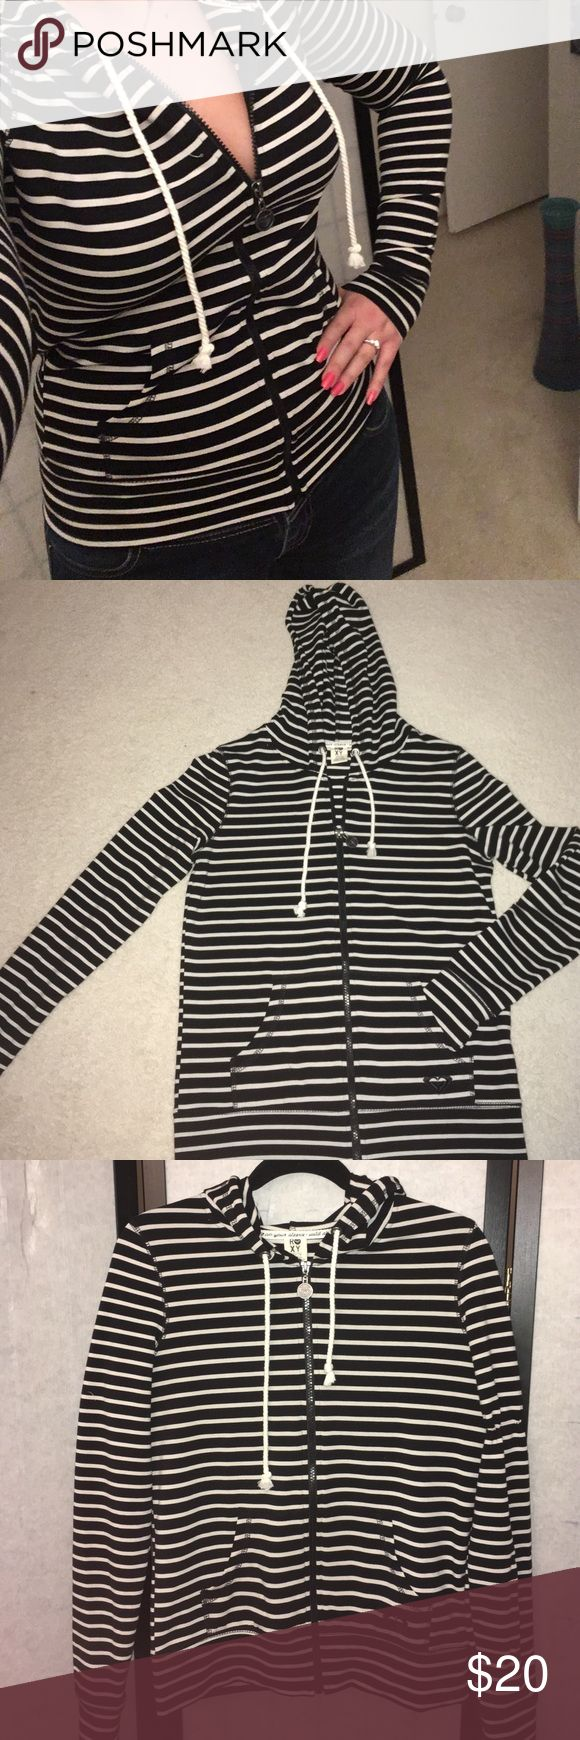 Roxy hooded zip-up Black and white striped, women's size medium, Roxy hooded zip up sweater. Like new only worn once. Roxy Sweaters